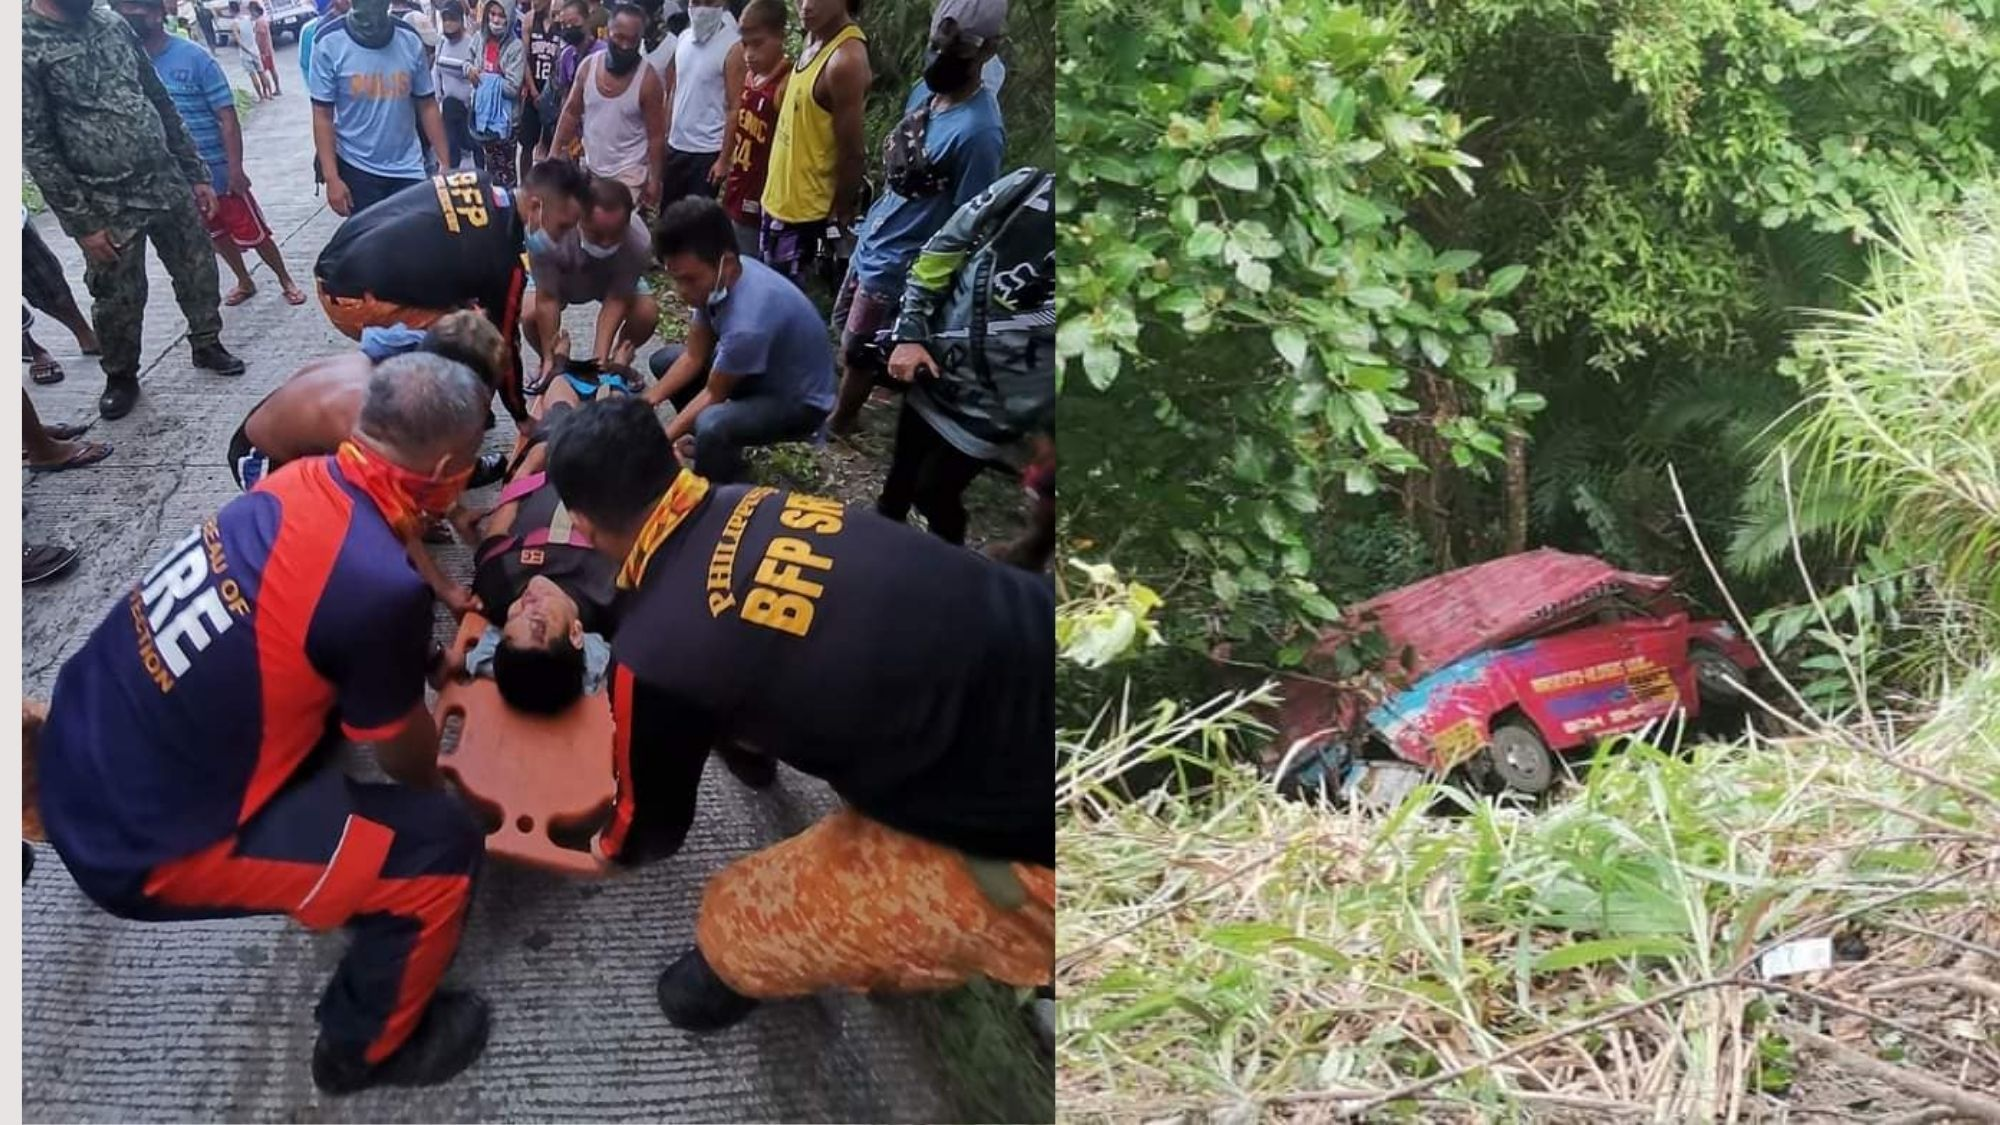 1 dead, 17 injured after multi-cab falls off cliff in S. Leyte